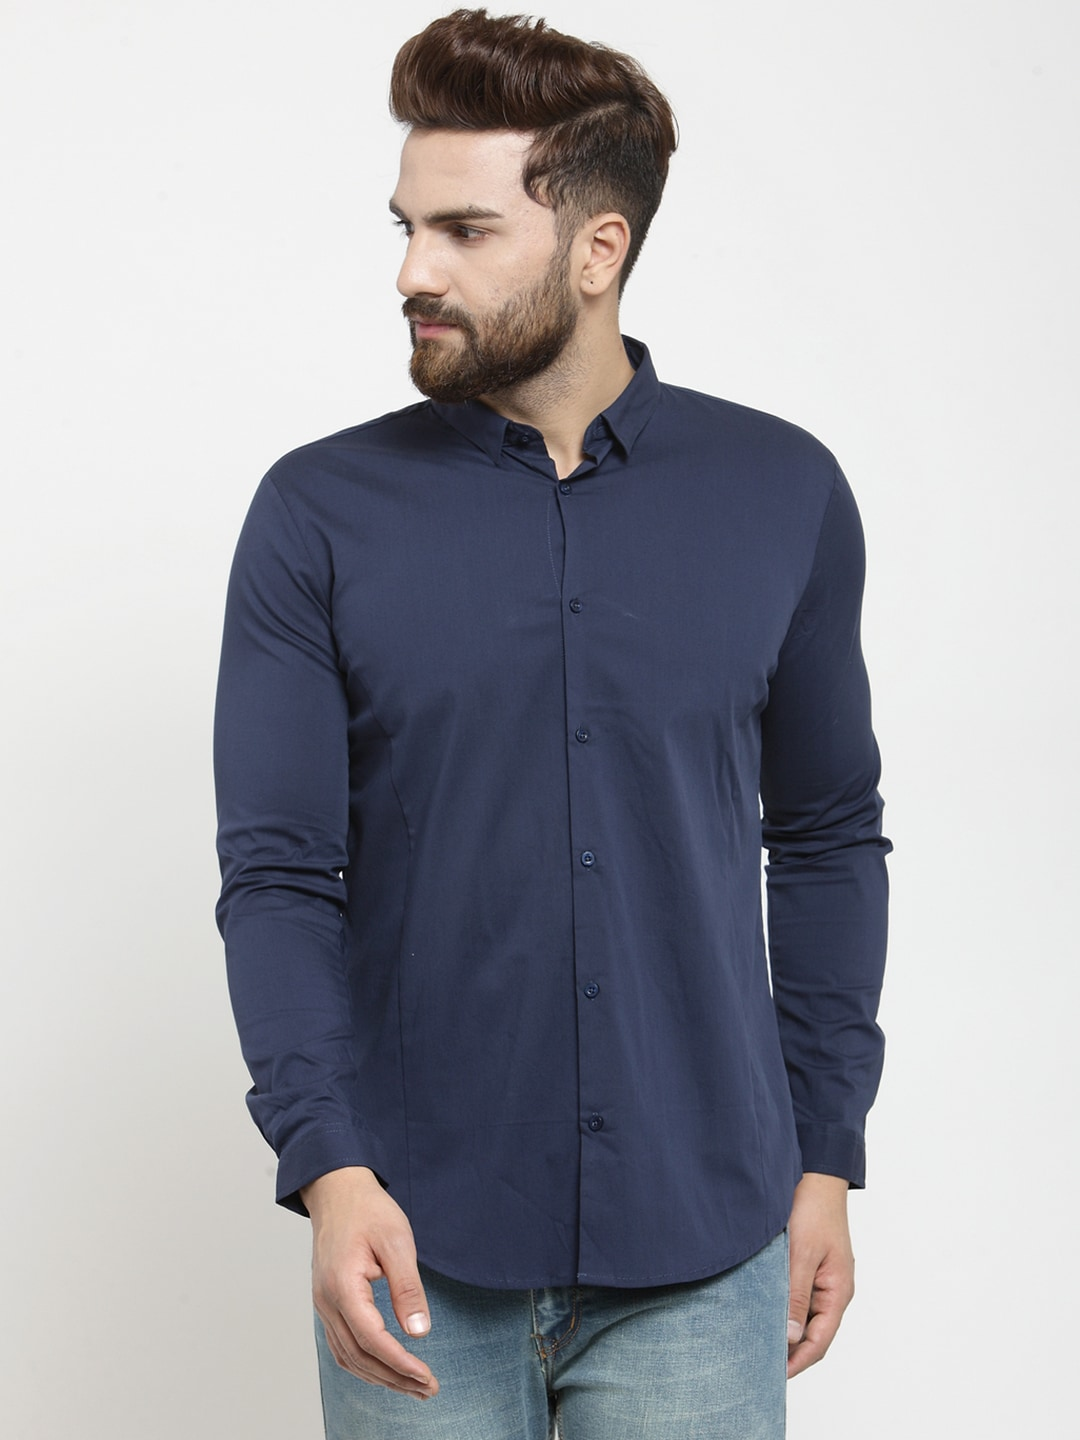 2fe8e045a68 Monteil Munero Shirts - Buy Monteil Munero Shirts online in India